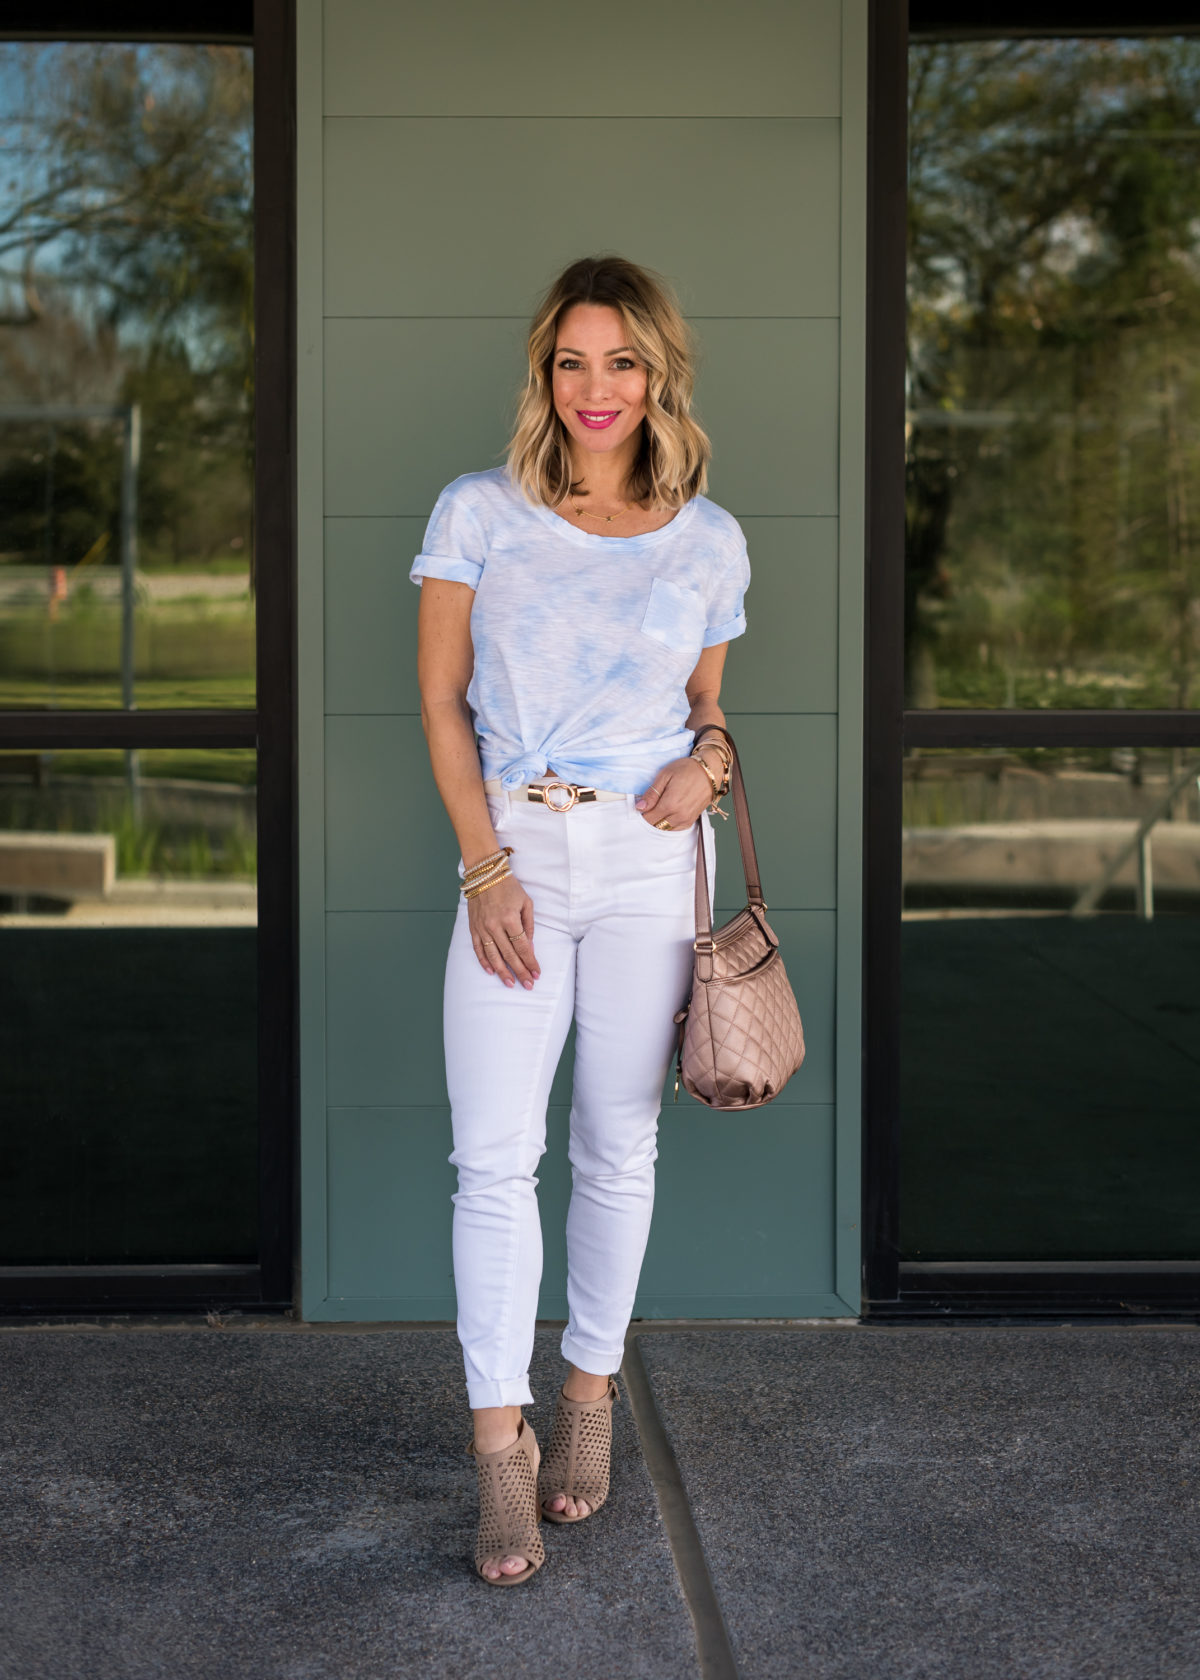 Affordable Spring Styles | White Jeans Under $25